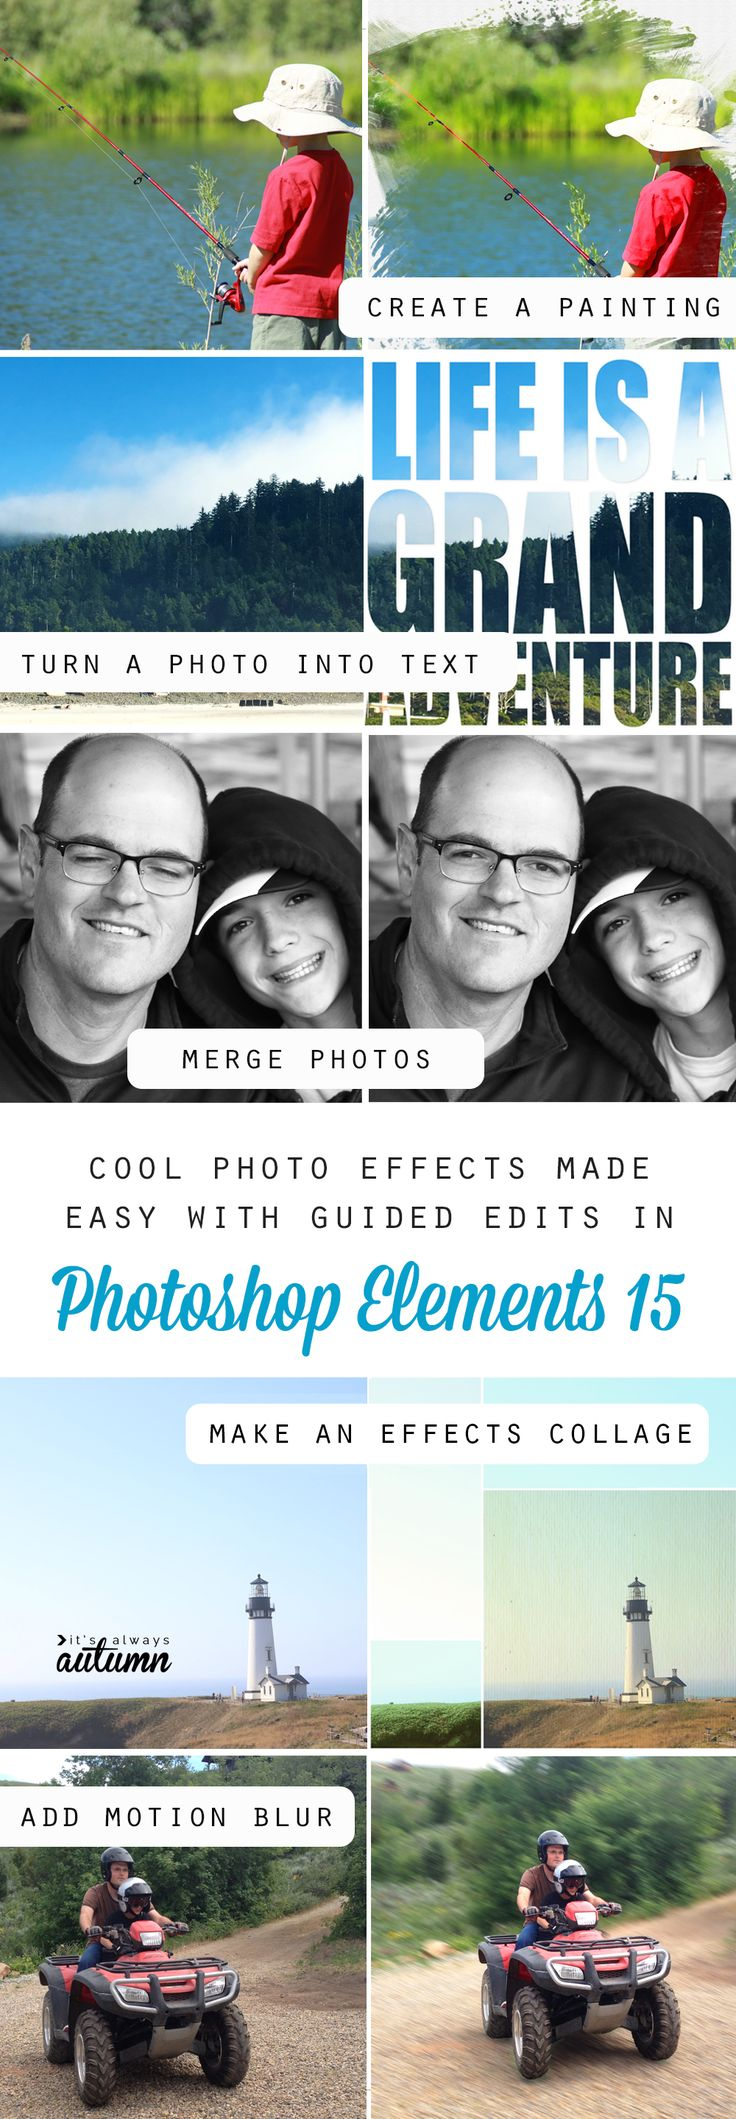 There are so many cool photo edits and effects you can do in Photoshop Elements 15 using easy guided edits! #ad